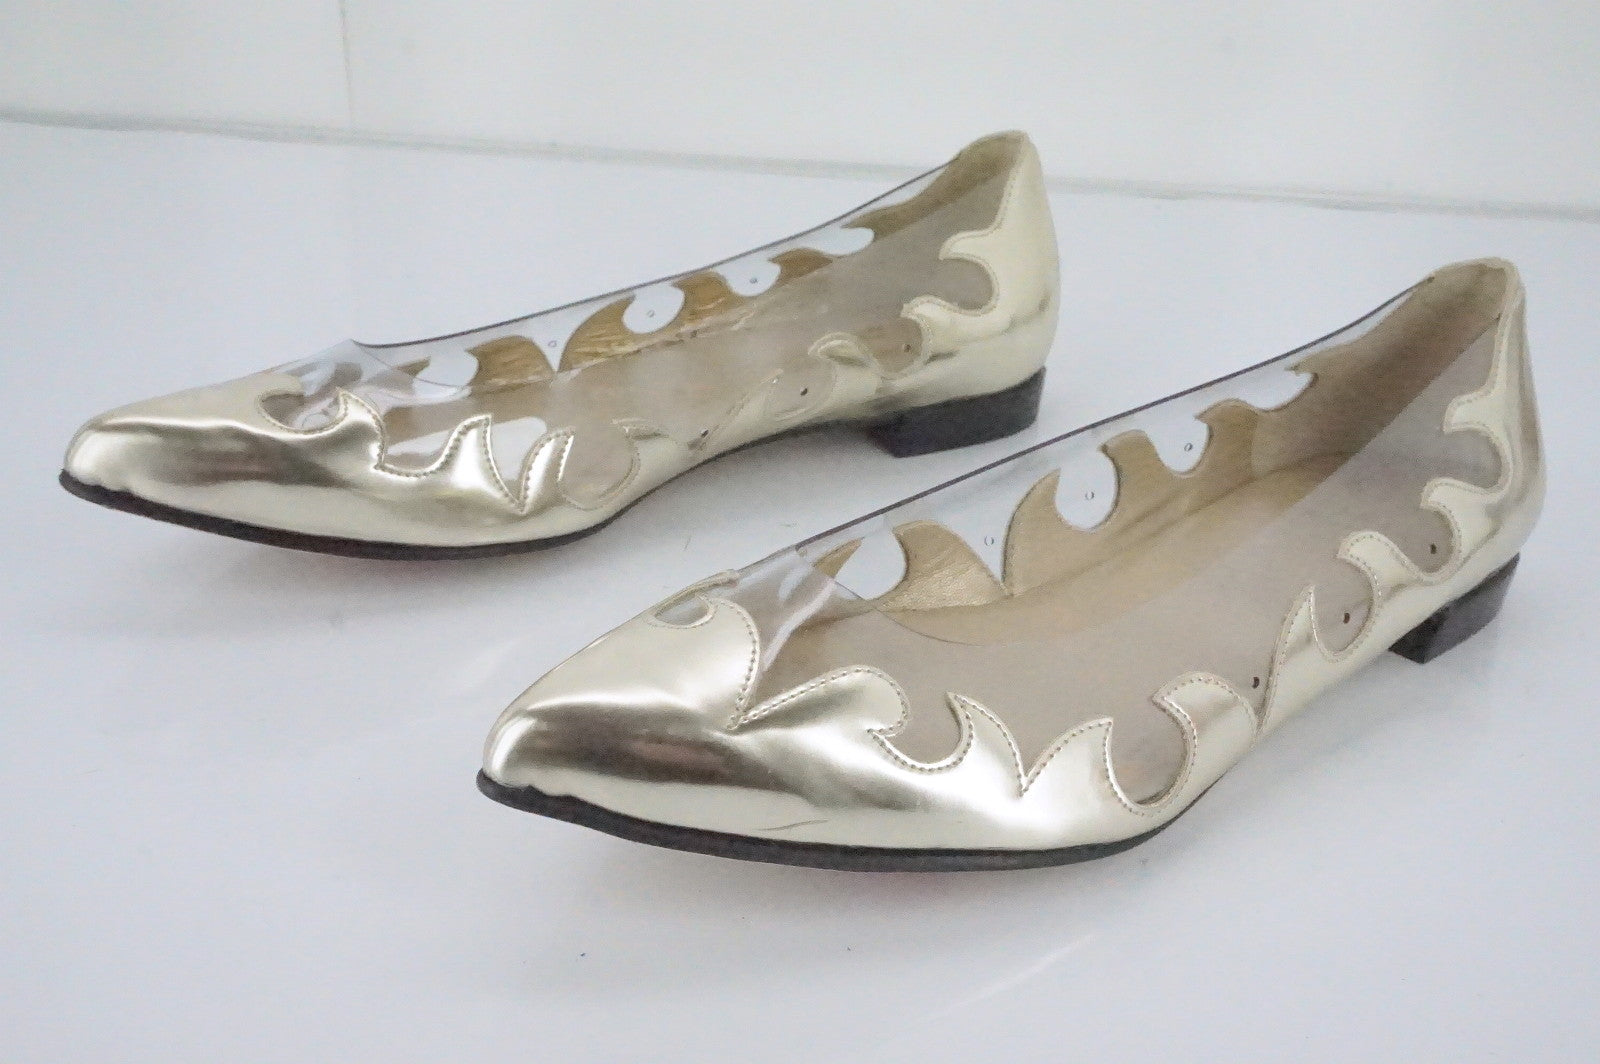 Stuart Weitzman Gold Leather 'Scrolly' Clear Flames Pointy Flats SZ 5.5 New $375